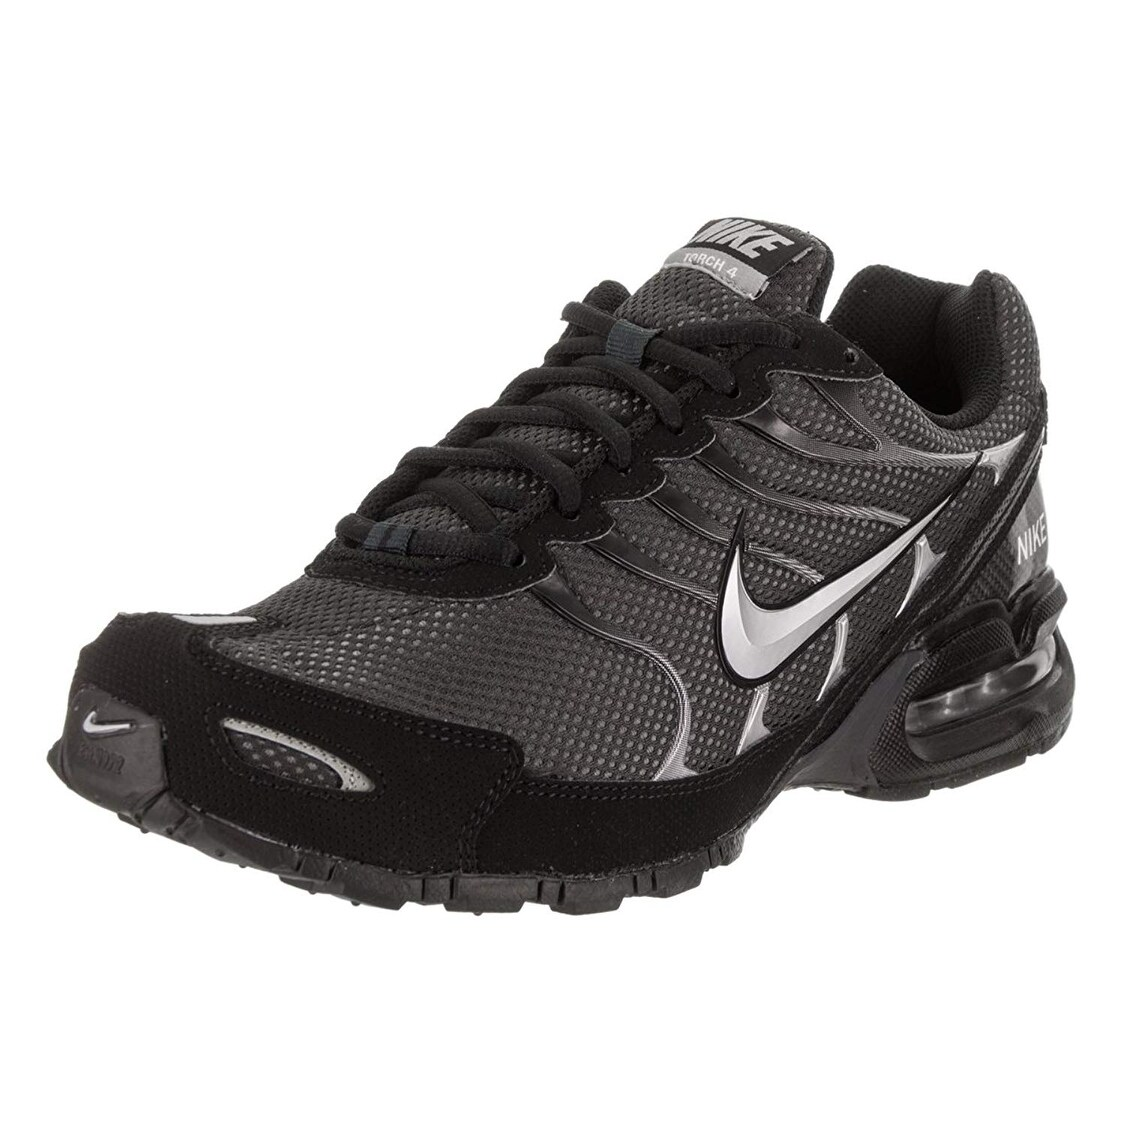 best website 01017 62f92 Shop Nike Men s Air Max Torch 4 Running Shoe  343846-002,  Anthracite Metallic Silver-Black, 9 D(M) Us - Free Shipping Today -  Overstock - 25739205